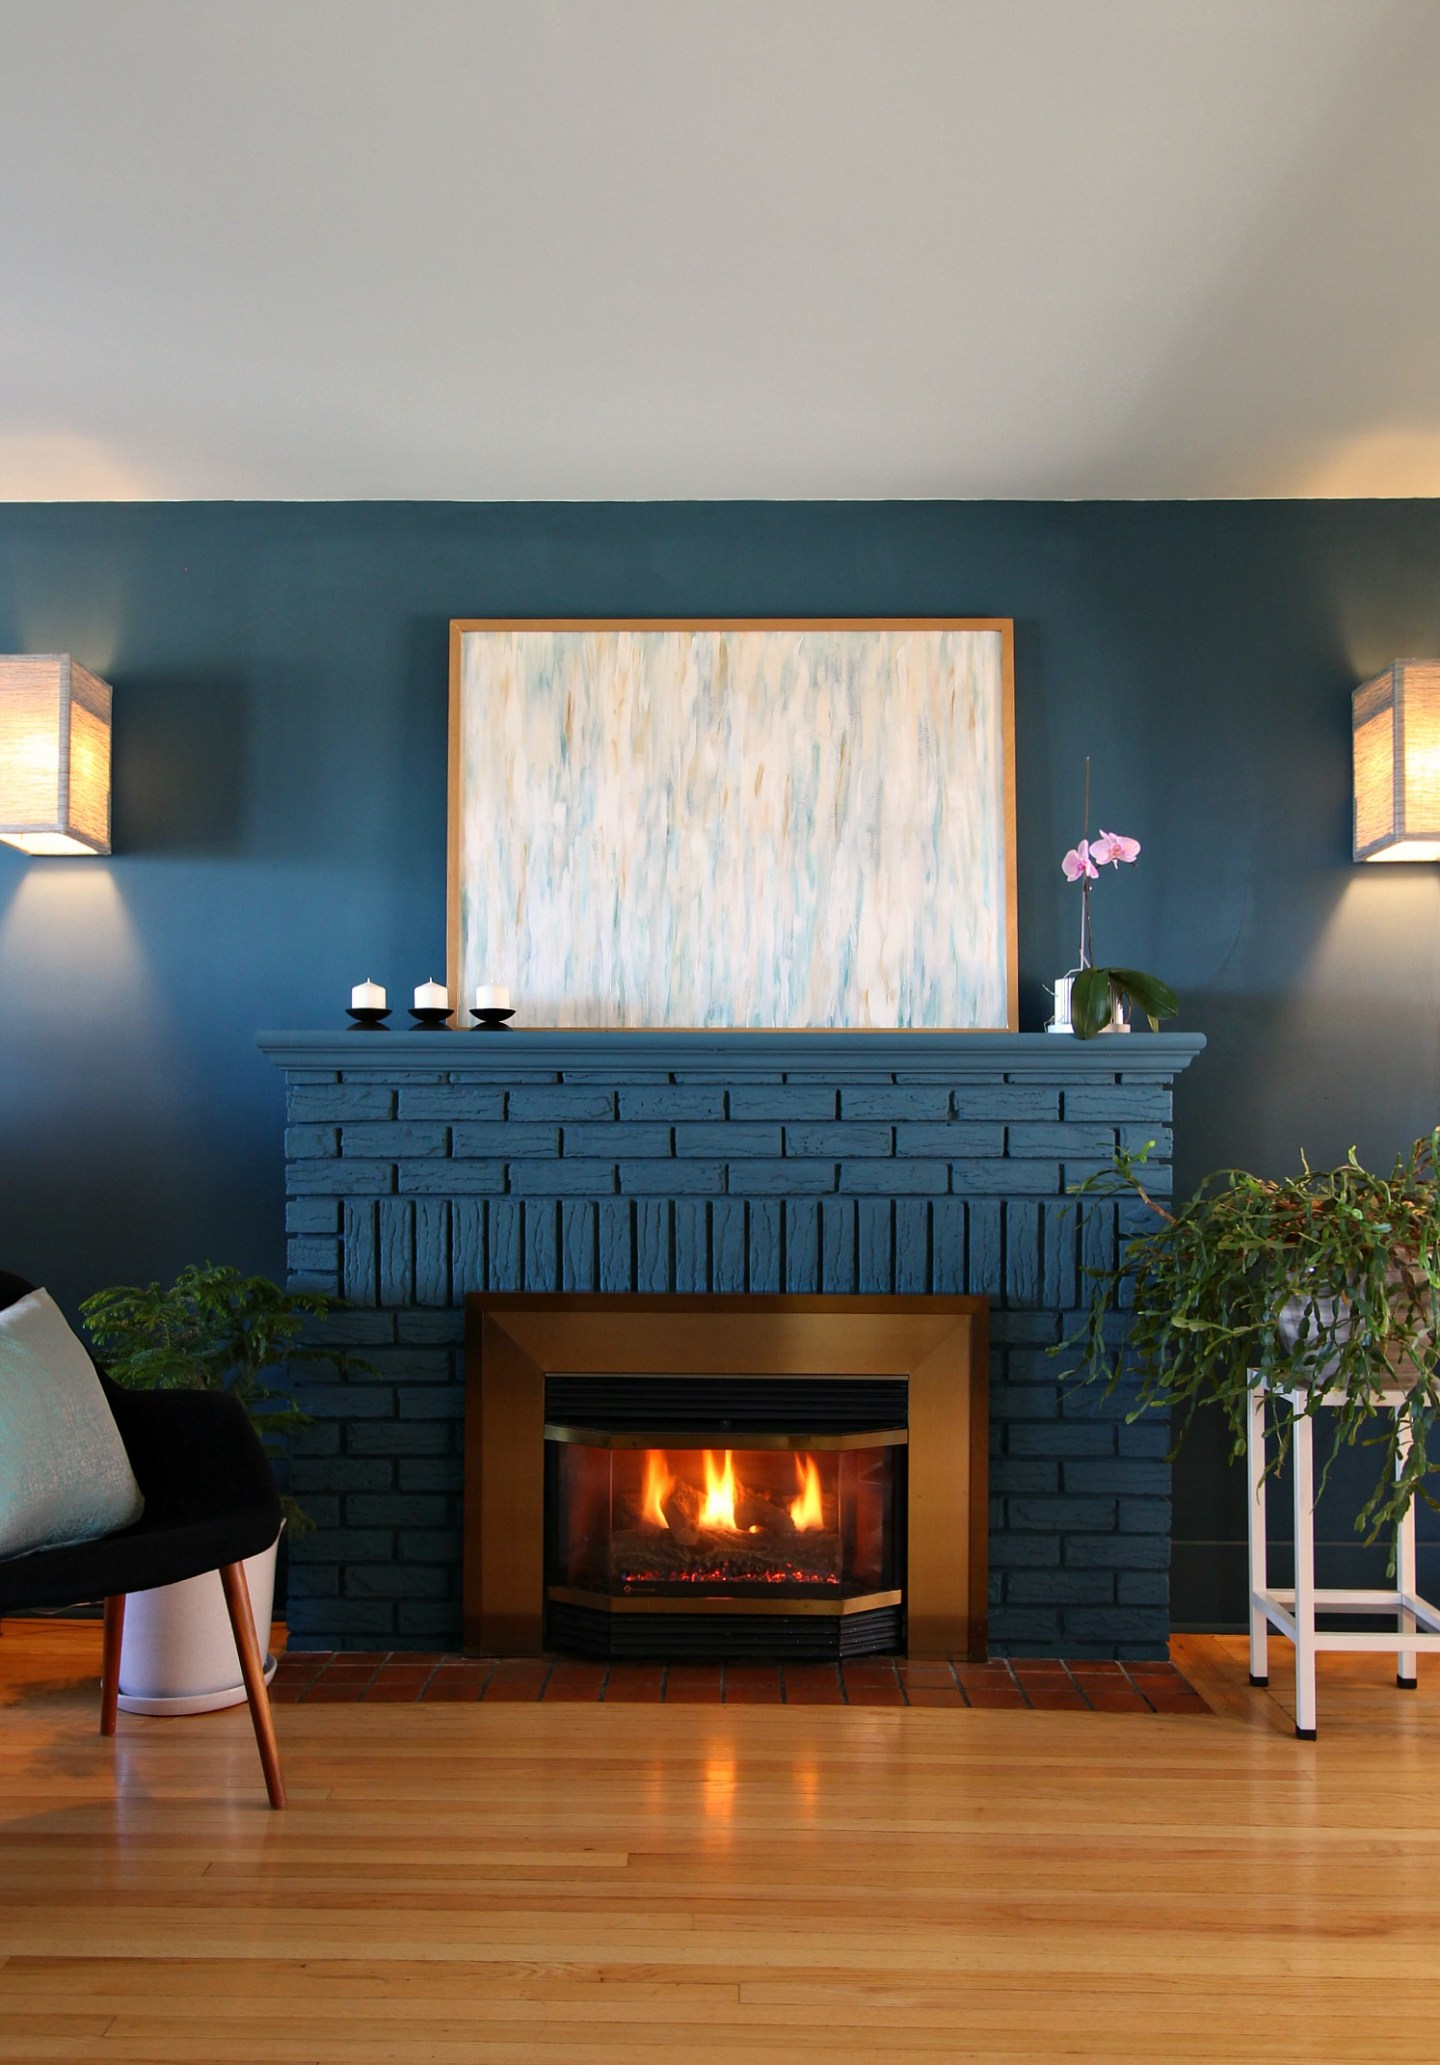 Idea for Winter Mantel Decor After Christmas